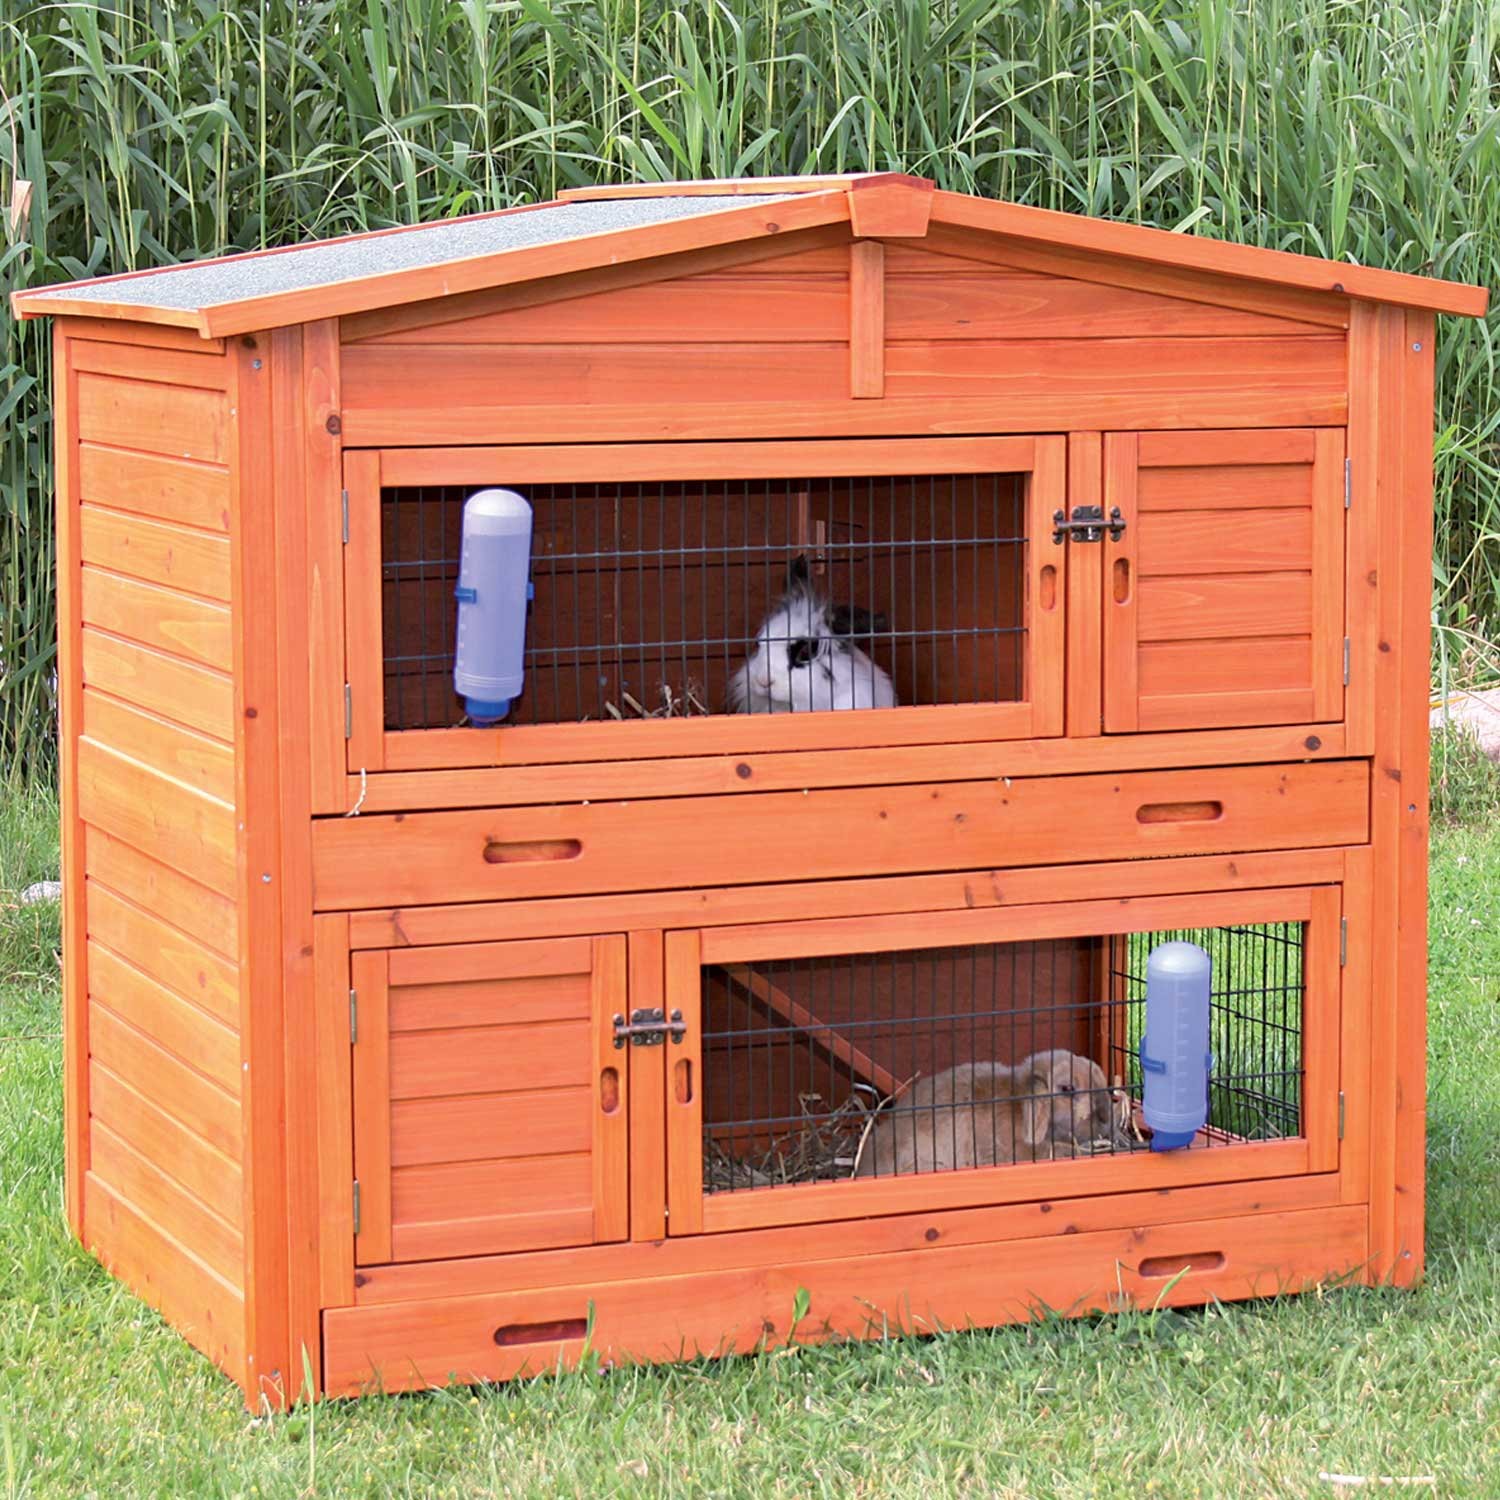 trixie with ft x hutch enclosure cages p beds rabbit view a